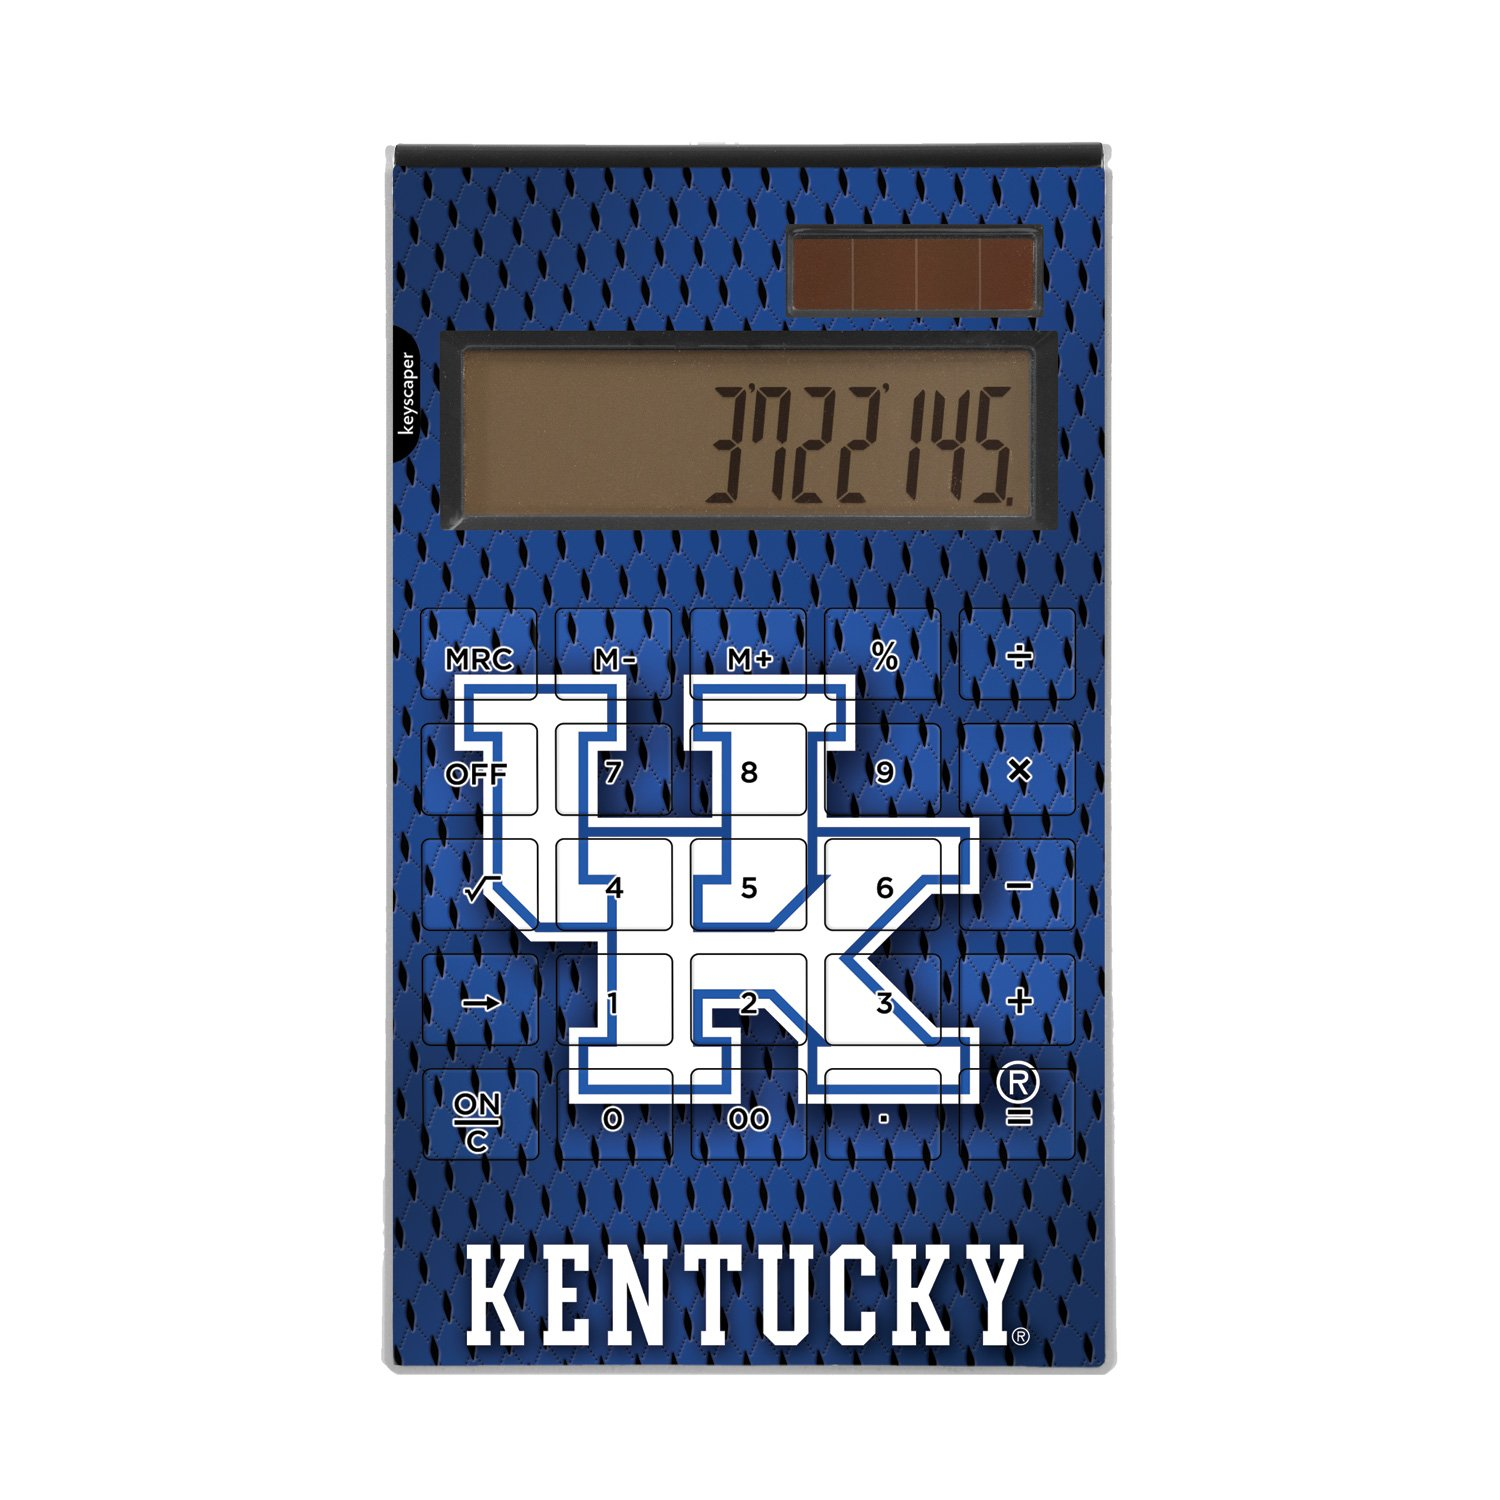 Kentucky Wildcats Desktop Calculator officially licensed by the University of Kentucky Full Size Large Button Solar by keyscaper®